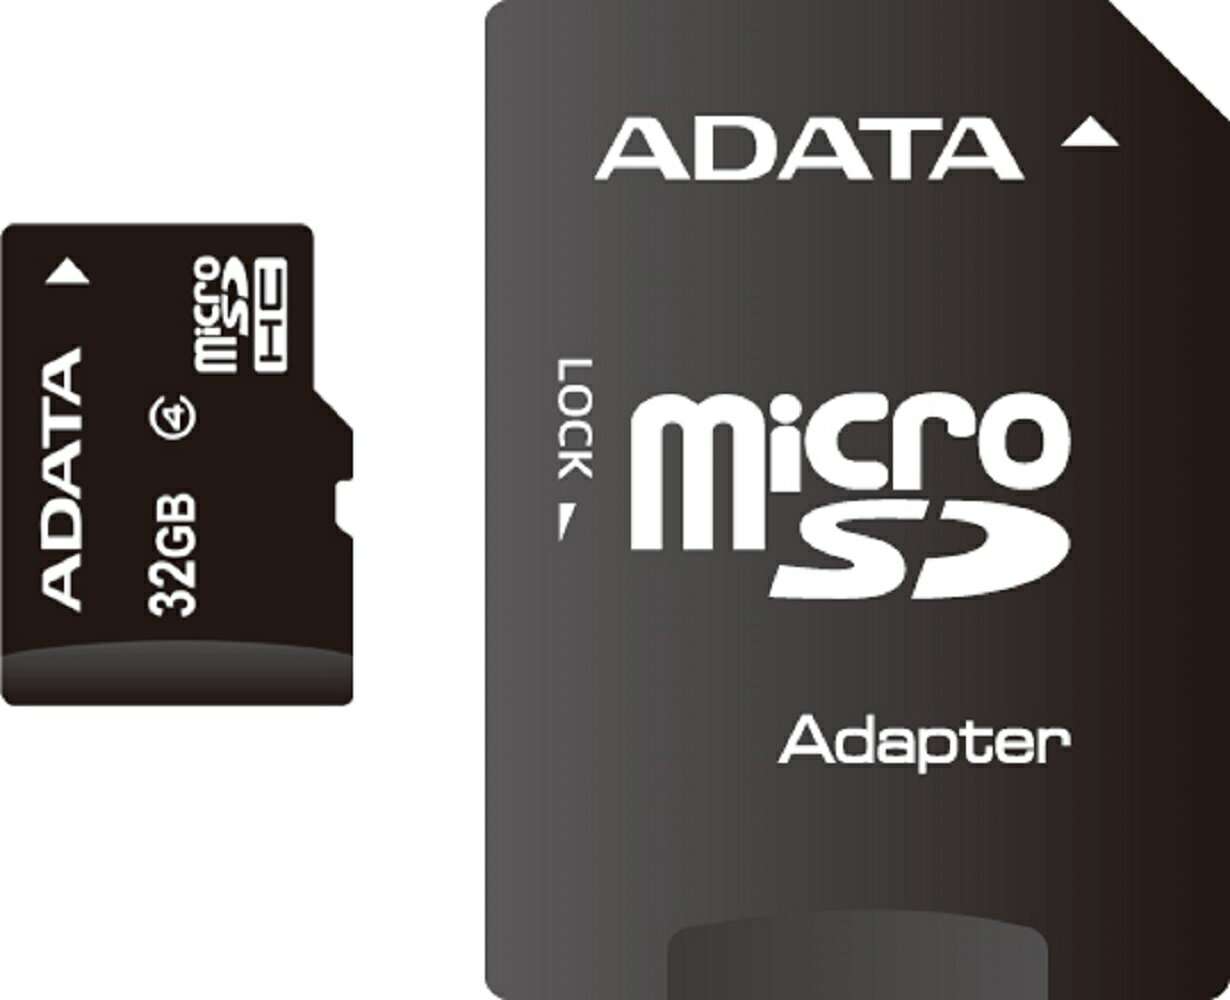 ADATA microSDHC Class 4 Card 32GB with Adapter (AUSDH32GCL4-RA1) 0